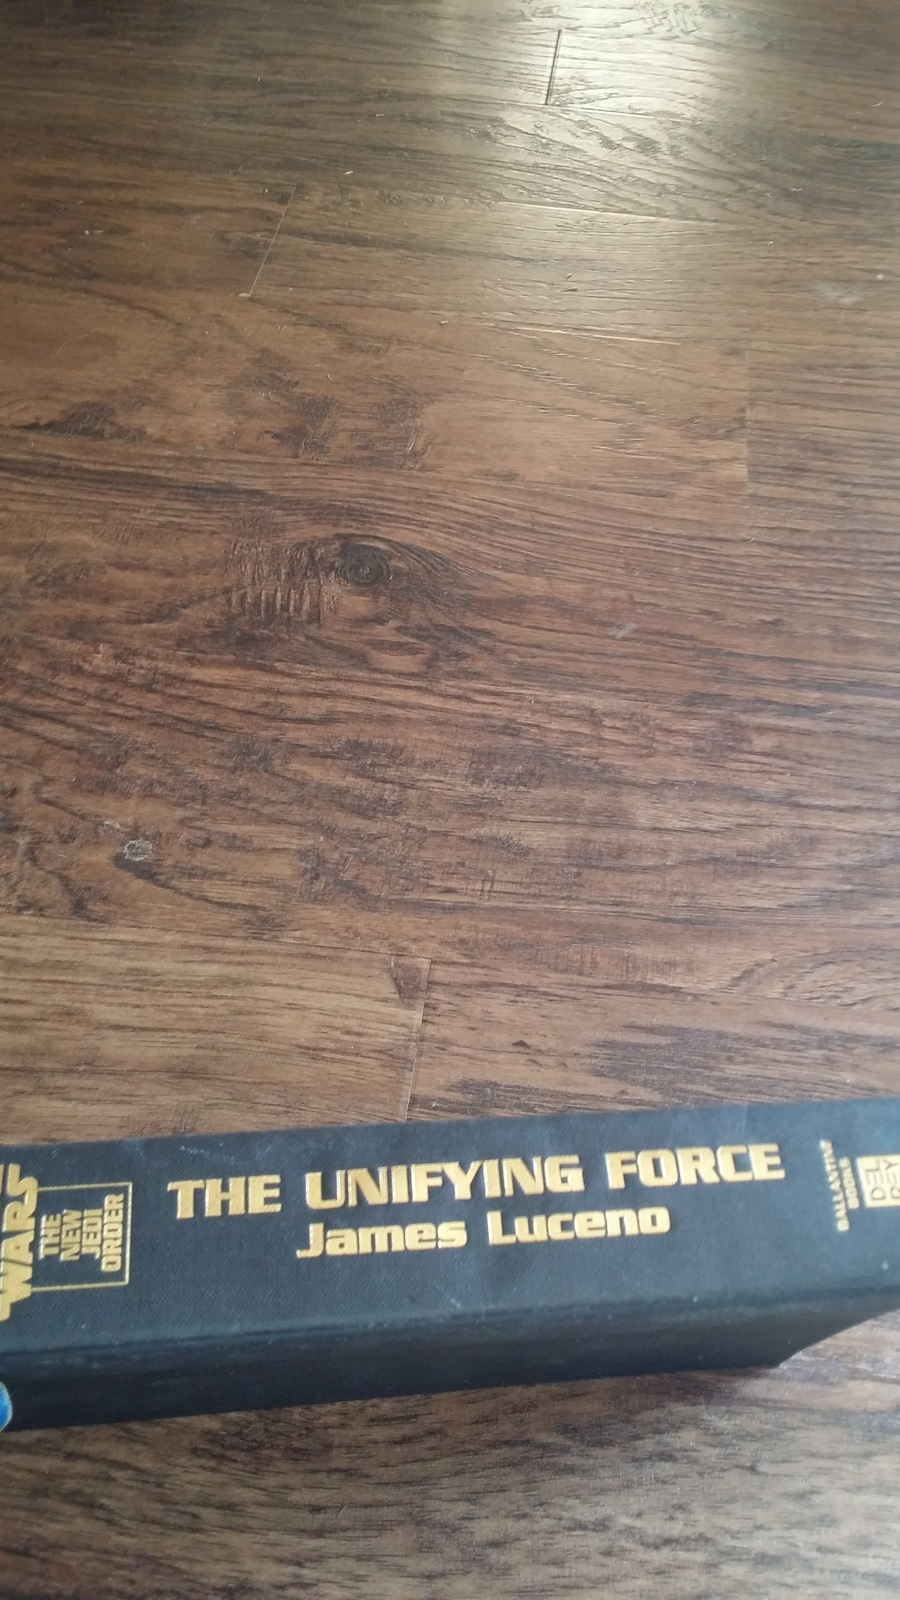 Star Wars:The New Jedi Order The Unifying Force by James Luceno (2003 Hardcover)